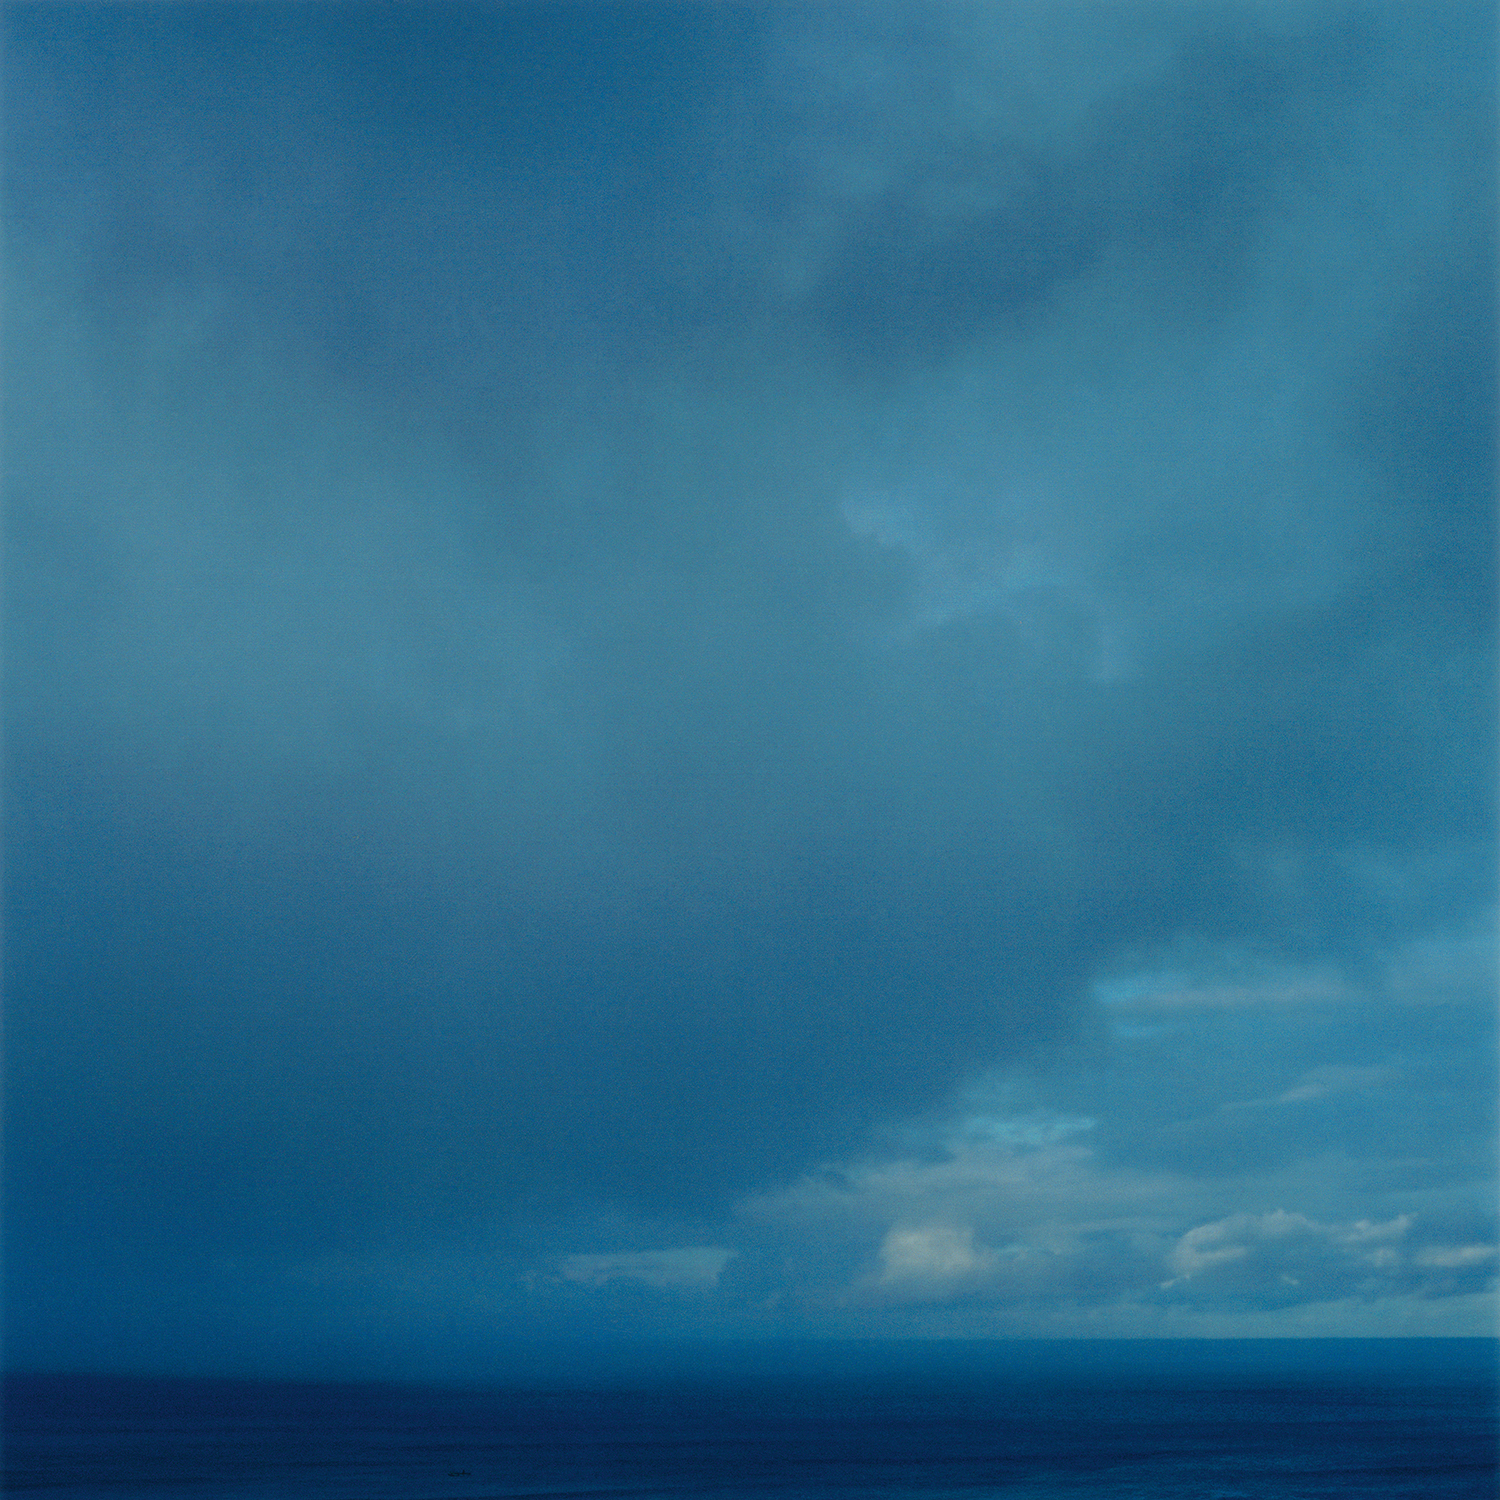 SQUALL, 2005